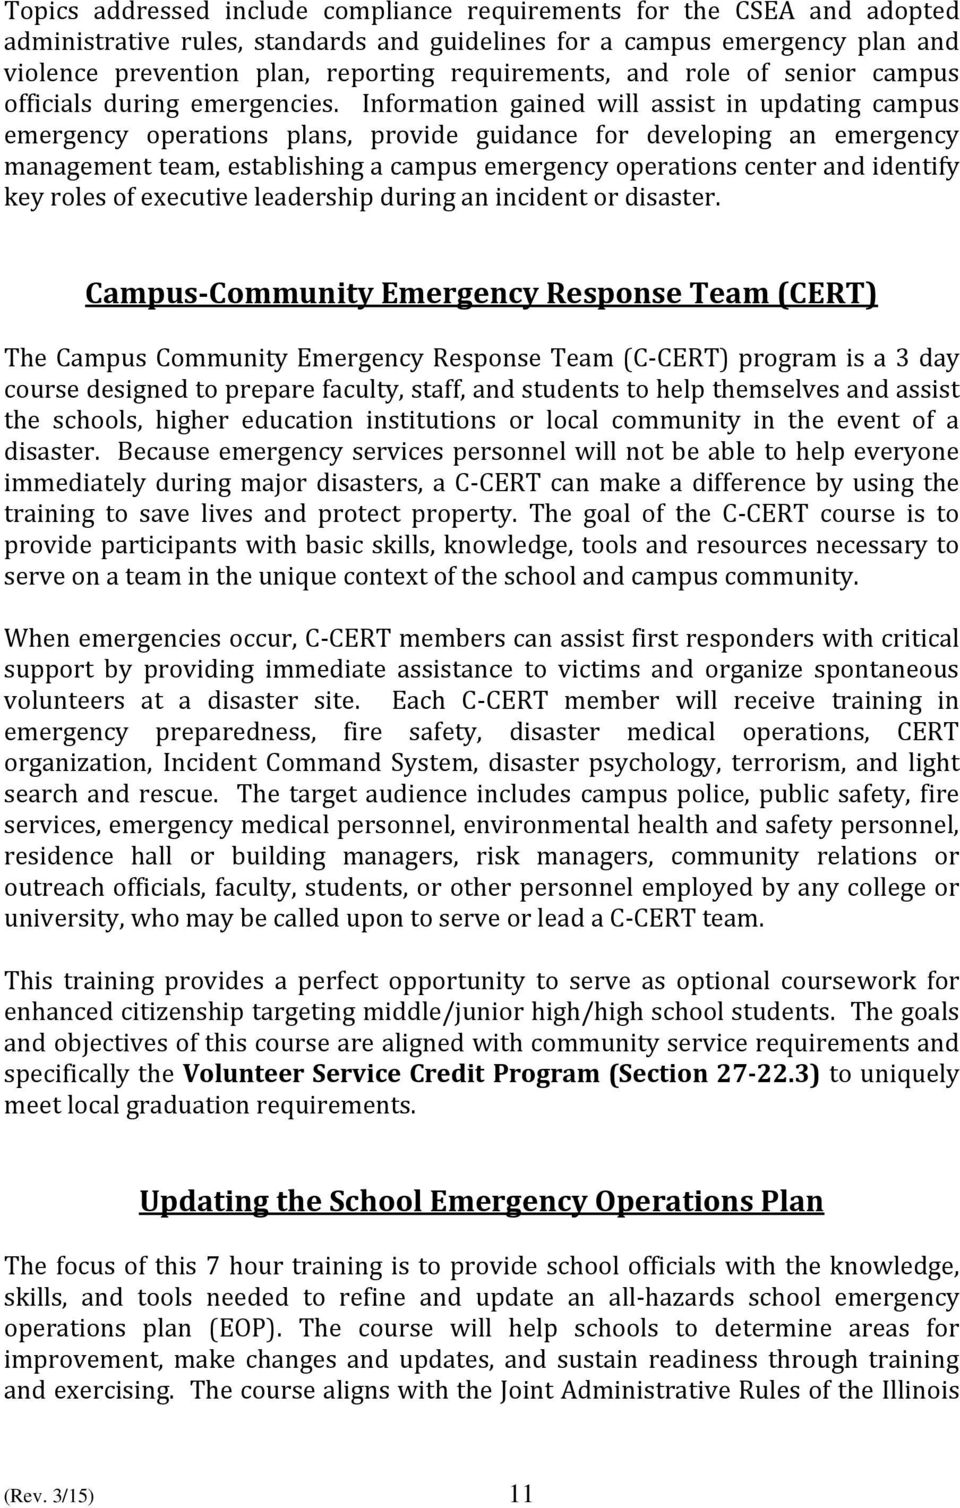 Information gained will assist in updating campus emergency operations plans, provide guidance for developing an emergency management team, establishing a campus emergency operations center and